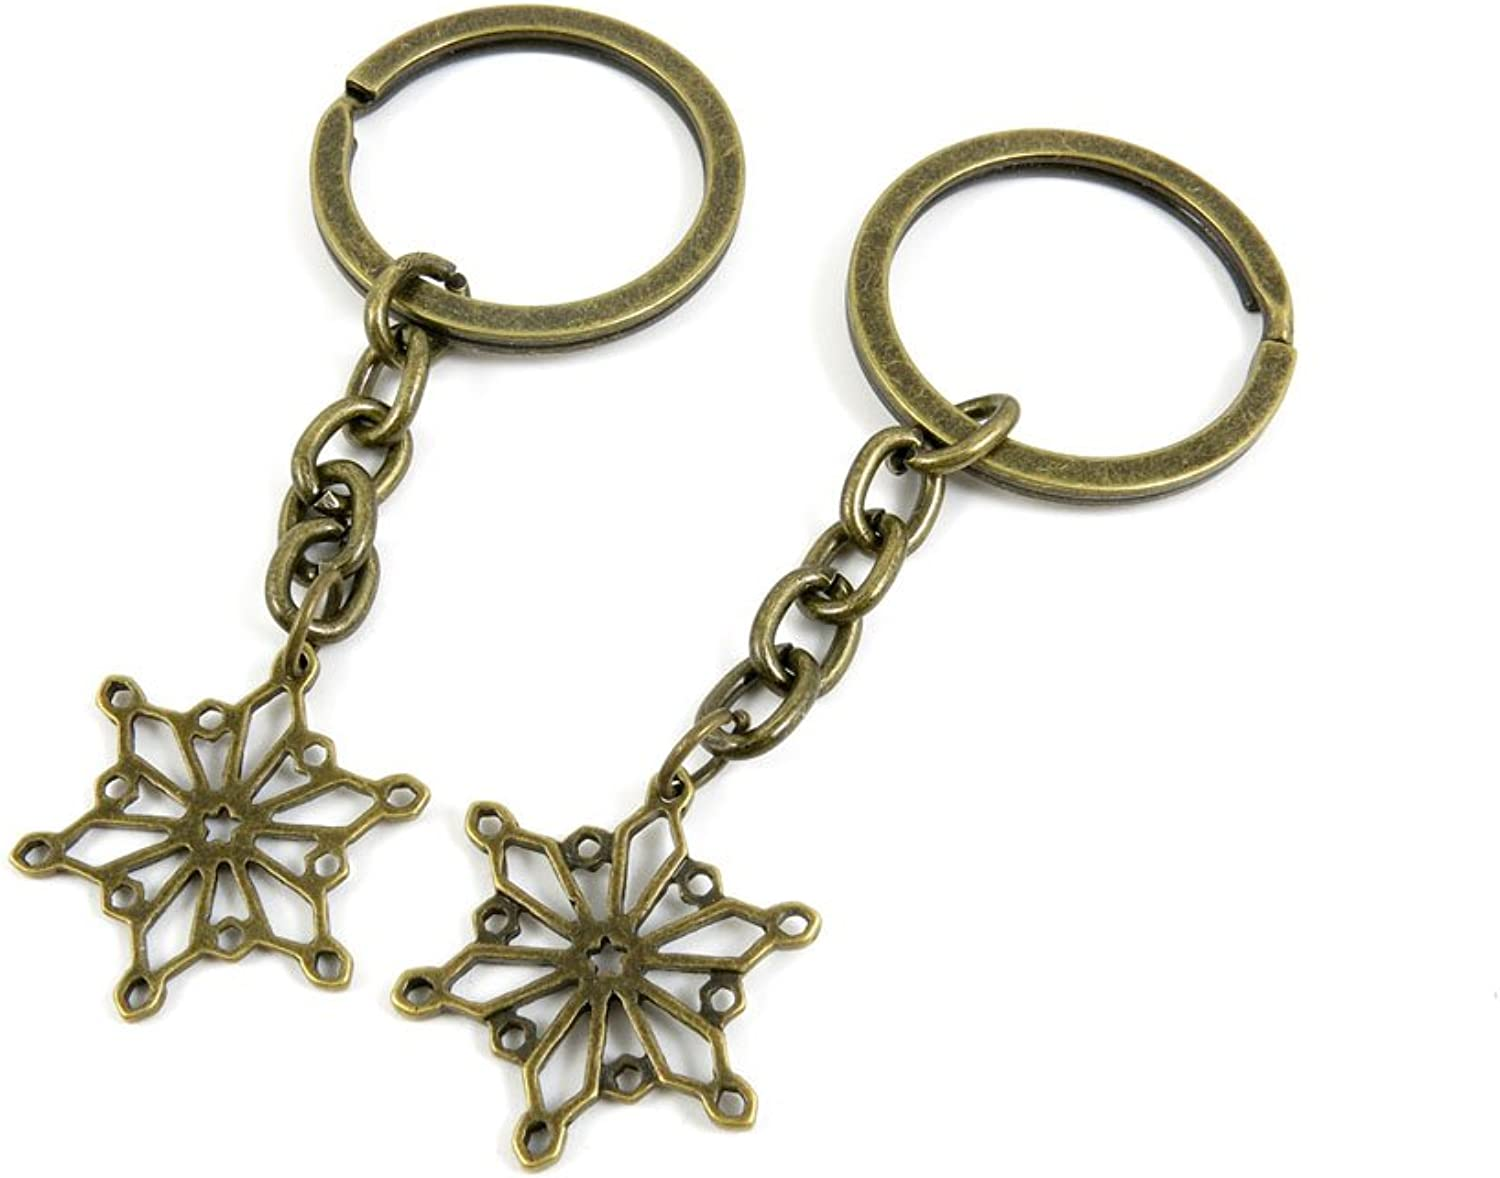 100 PCS Keyrings Keychains Key Ring Chains Tags Jewelry Findings Clasps Buckles Supplies V3BJ7 Snowflake